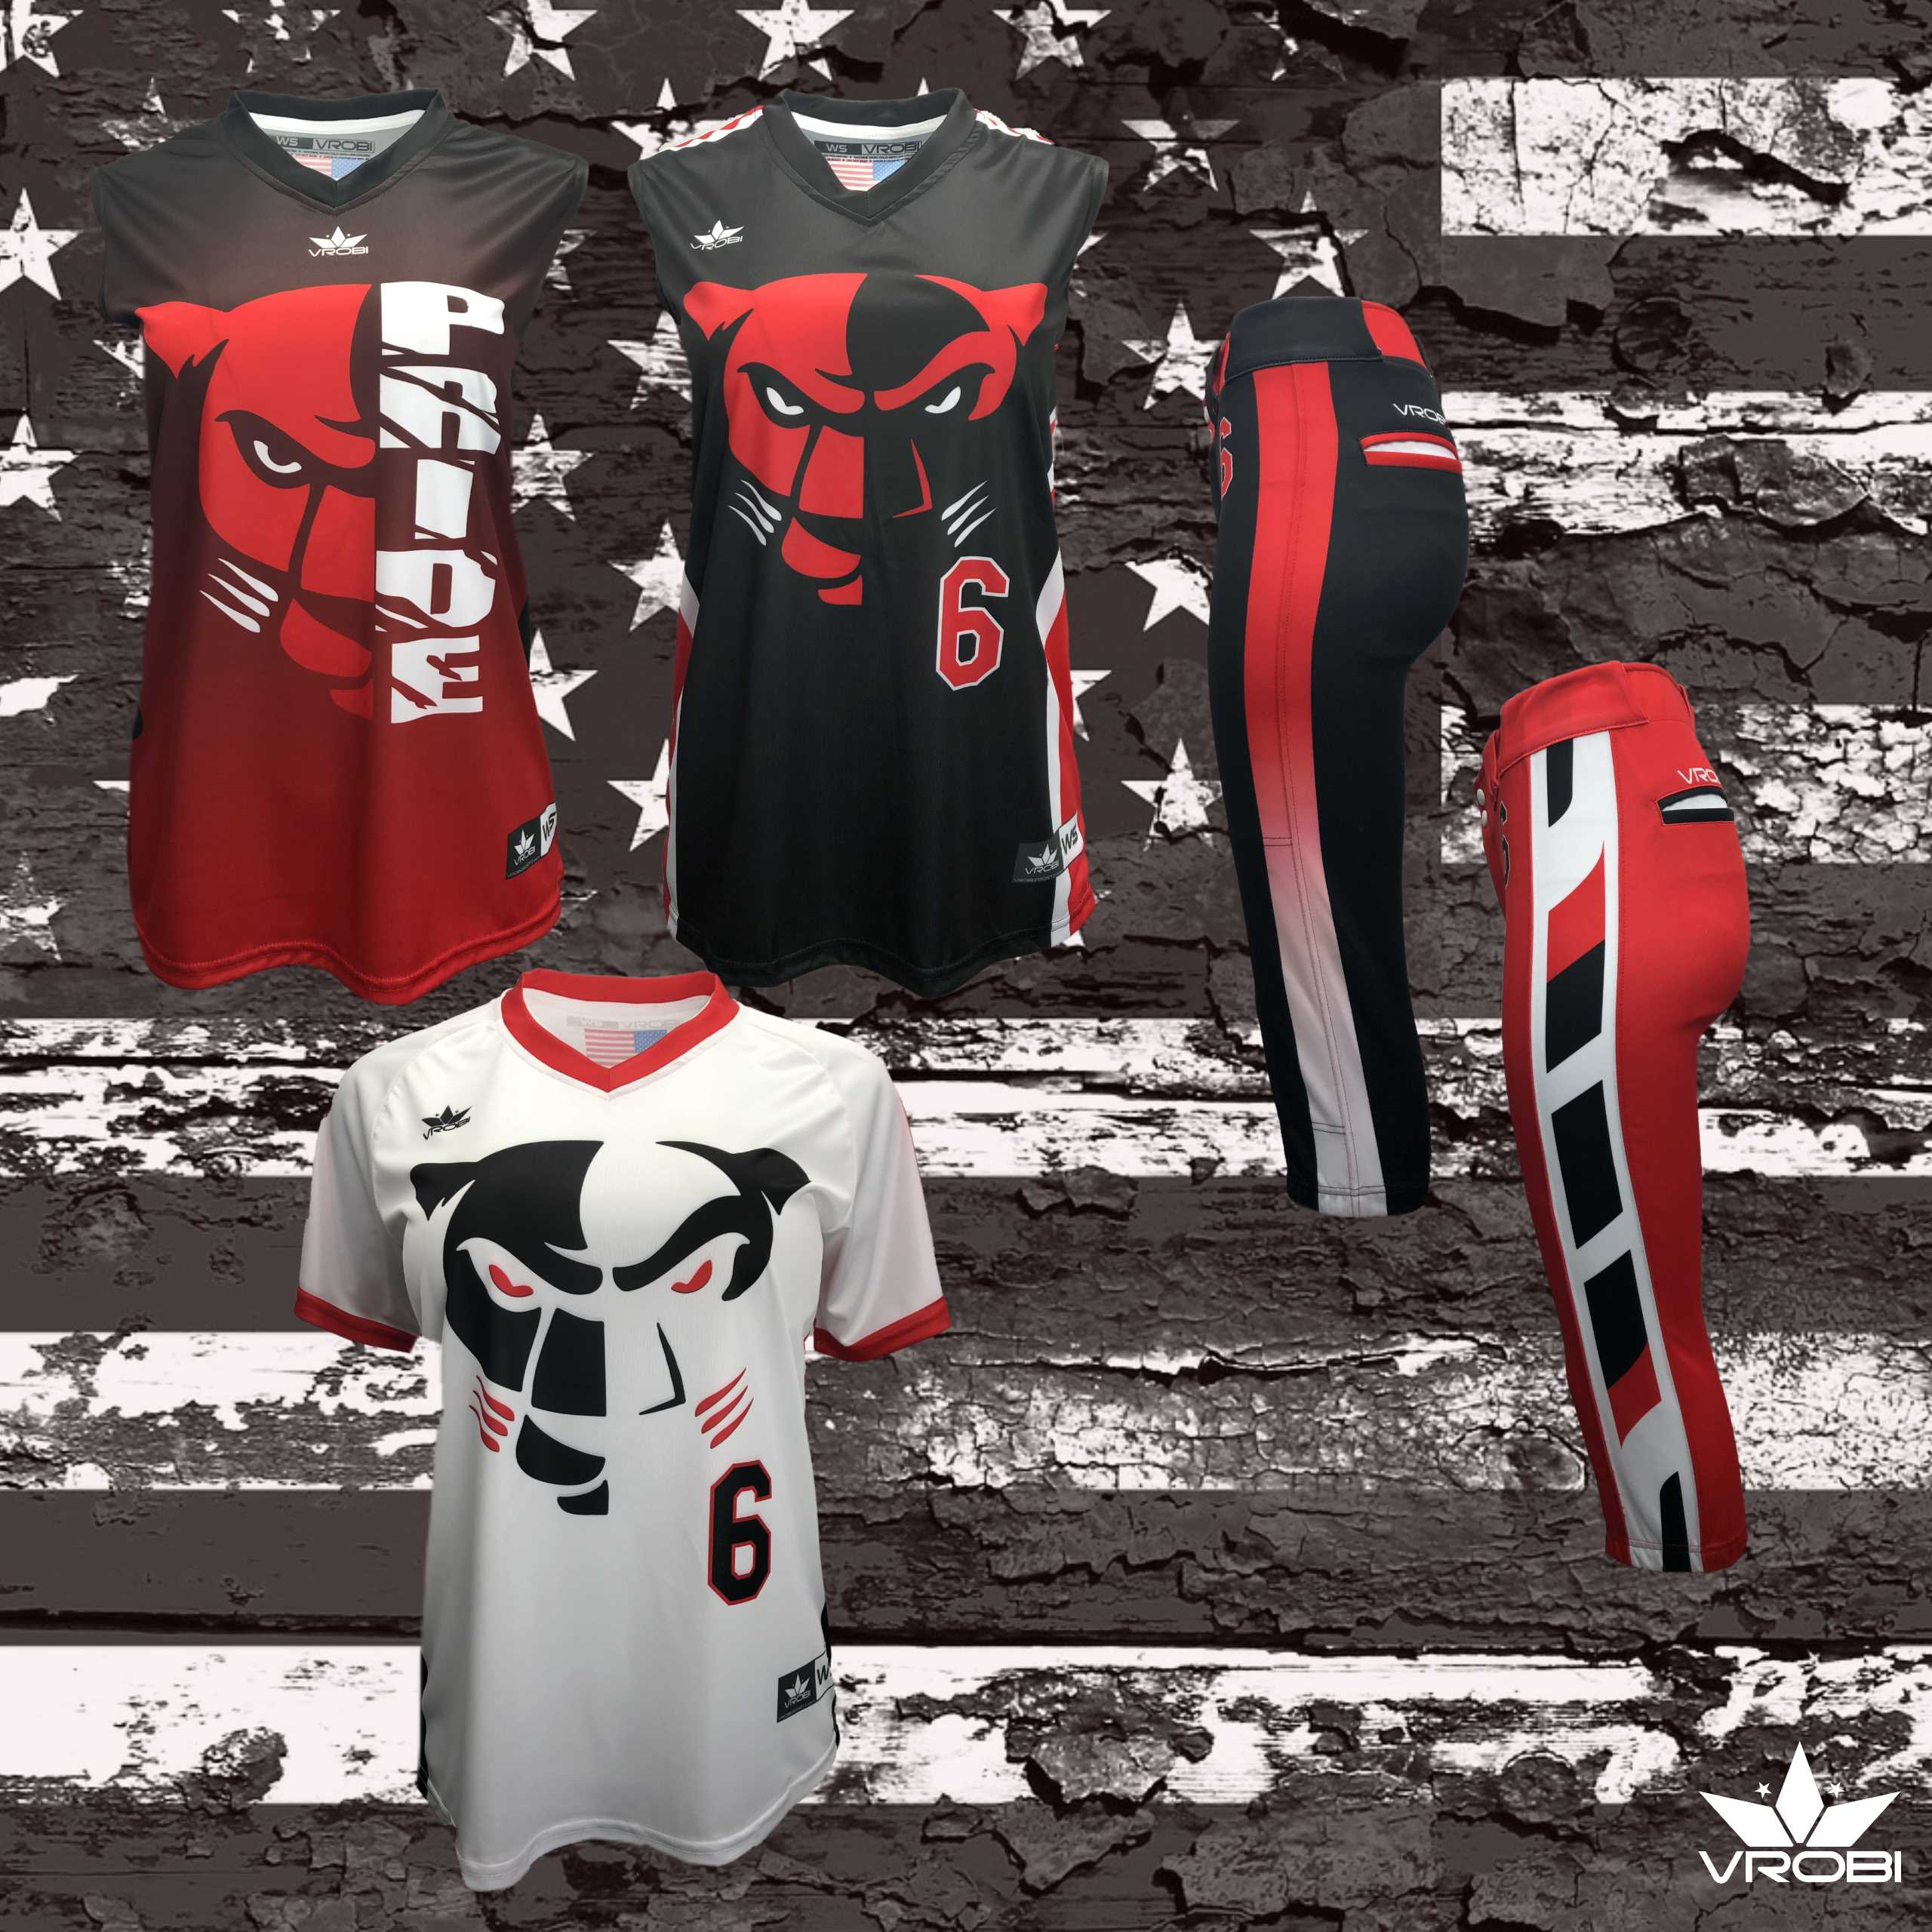 Silver Softball Team Package for Fastpitch Softball Teams showing custom uniforms